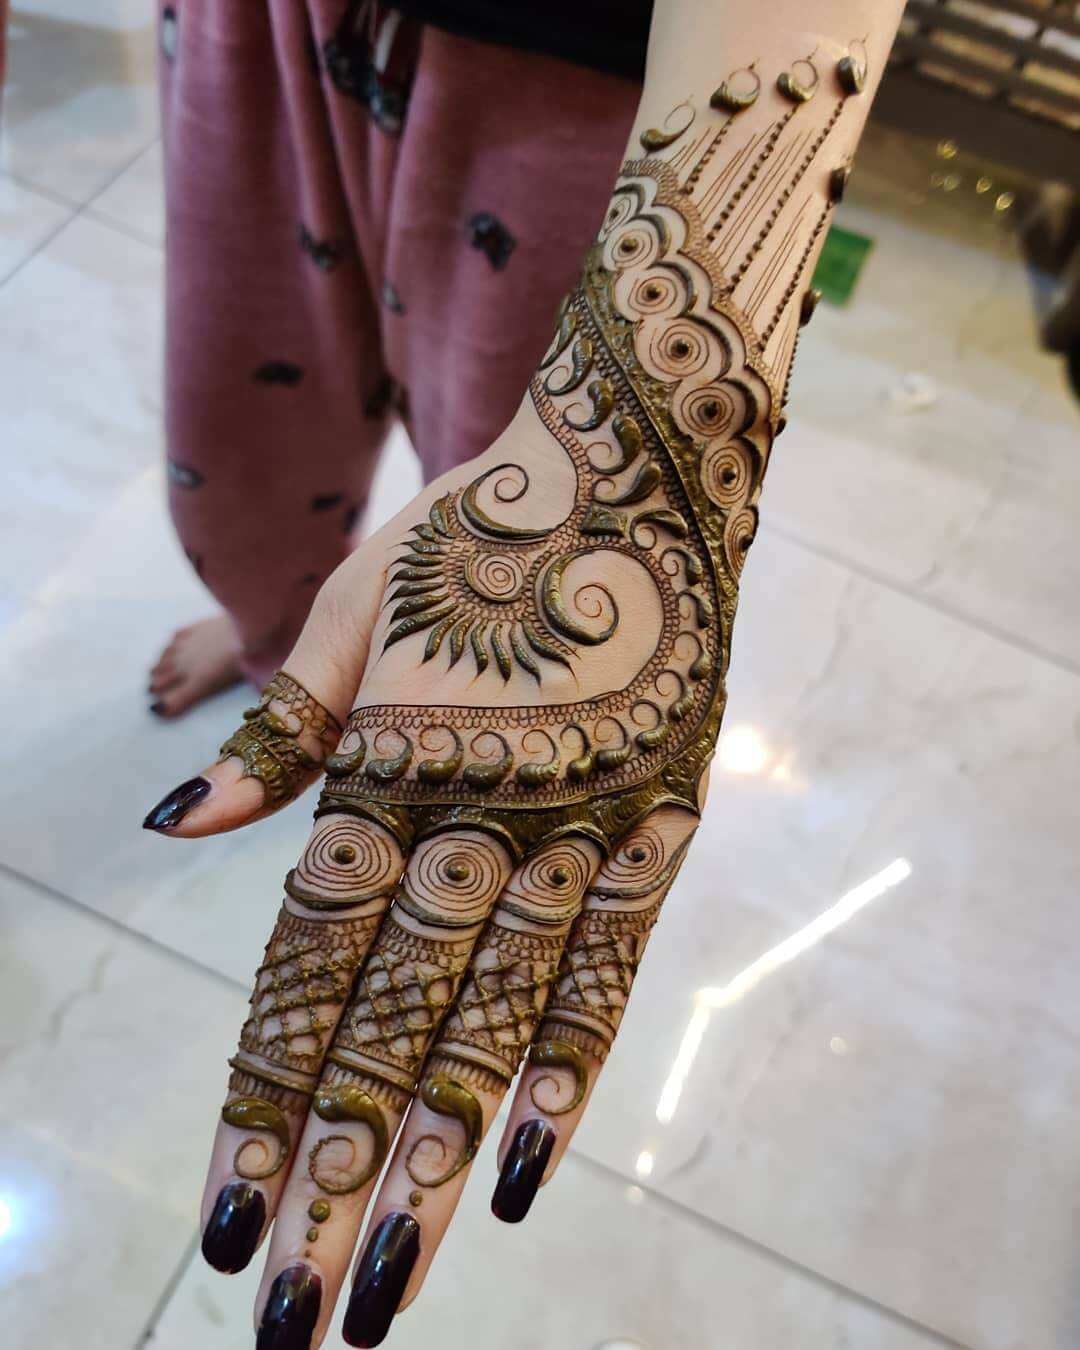 Elaborate Mehndi design for Raksha Bandhan